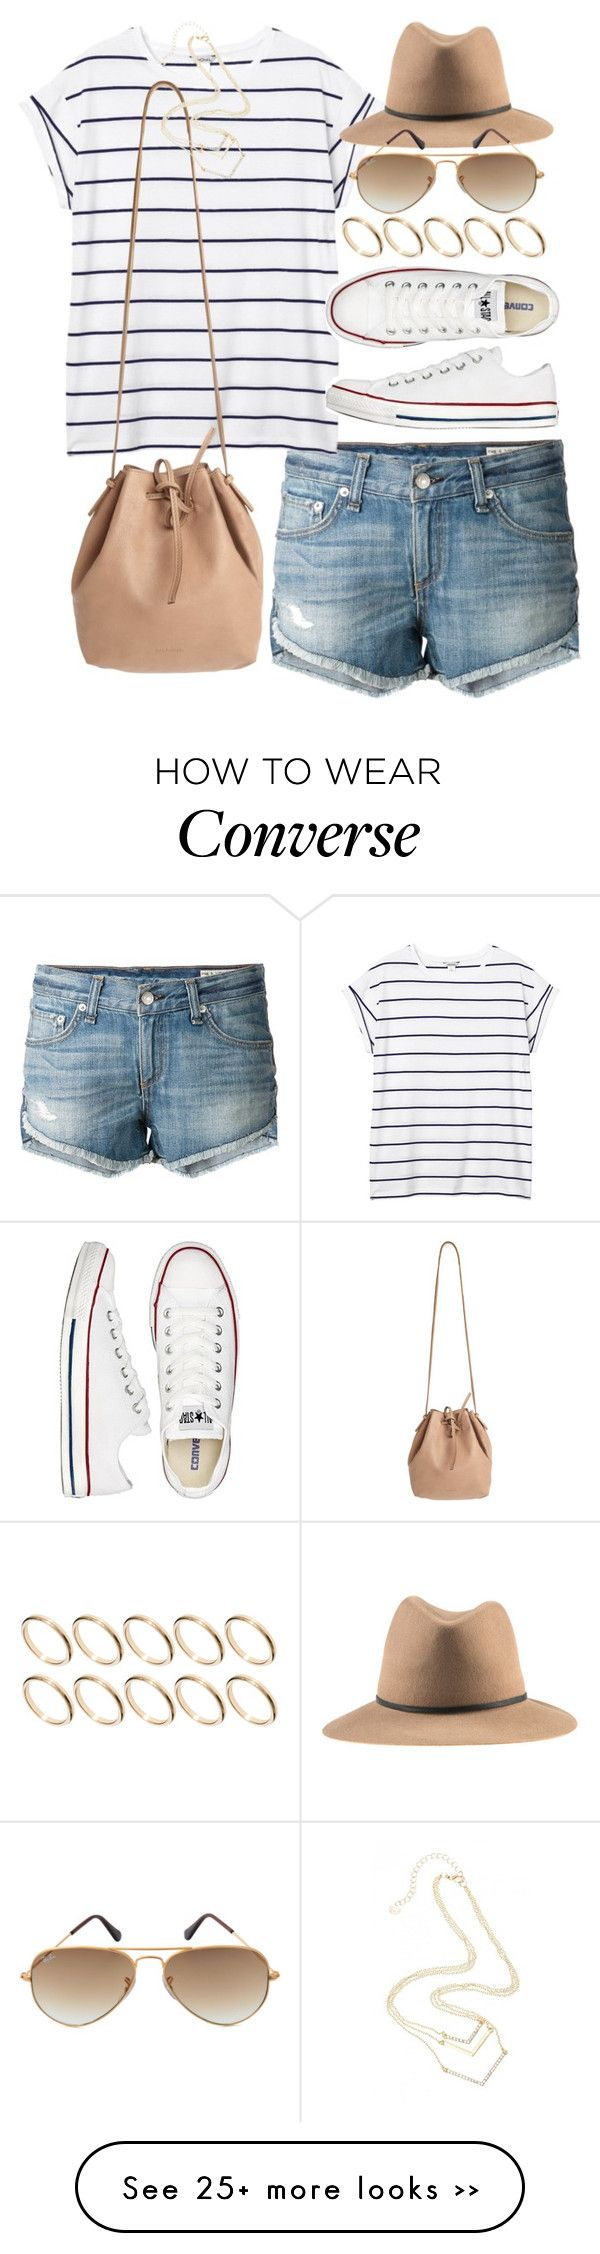 I love my converse and Im a very casual dresser so this is like a typical everyday outfit I would wear